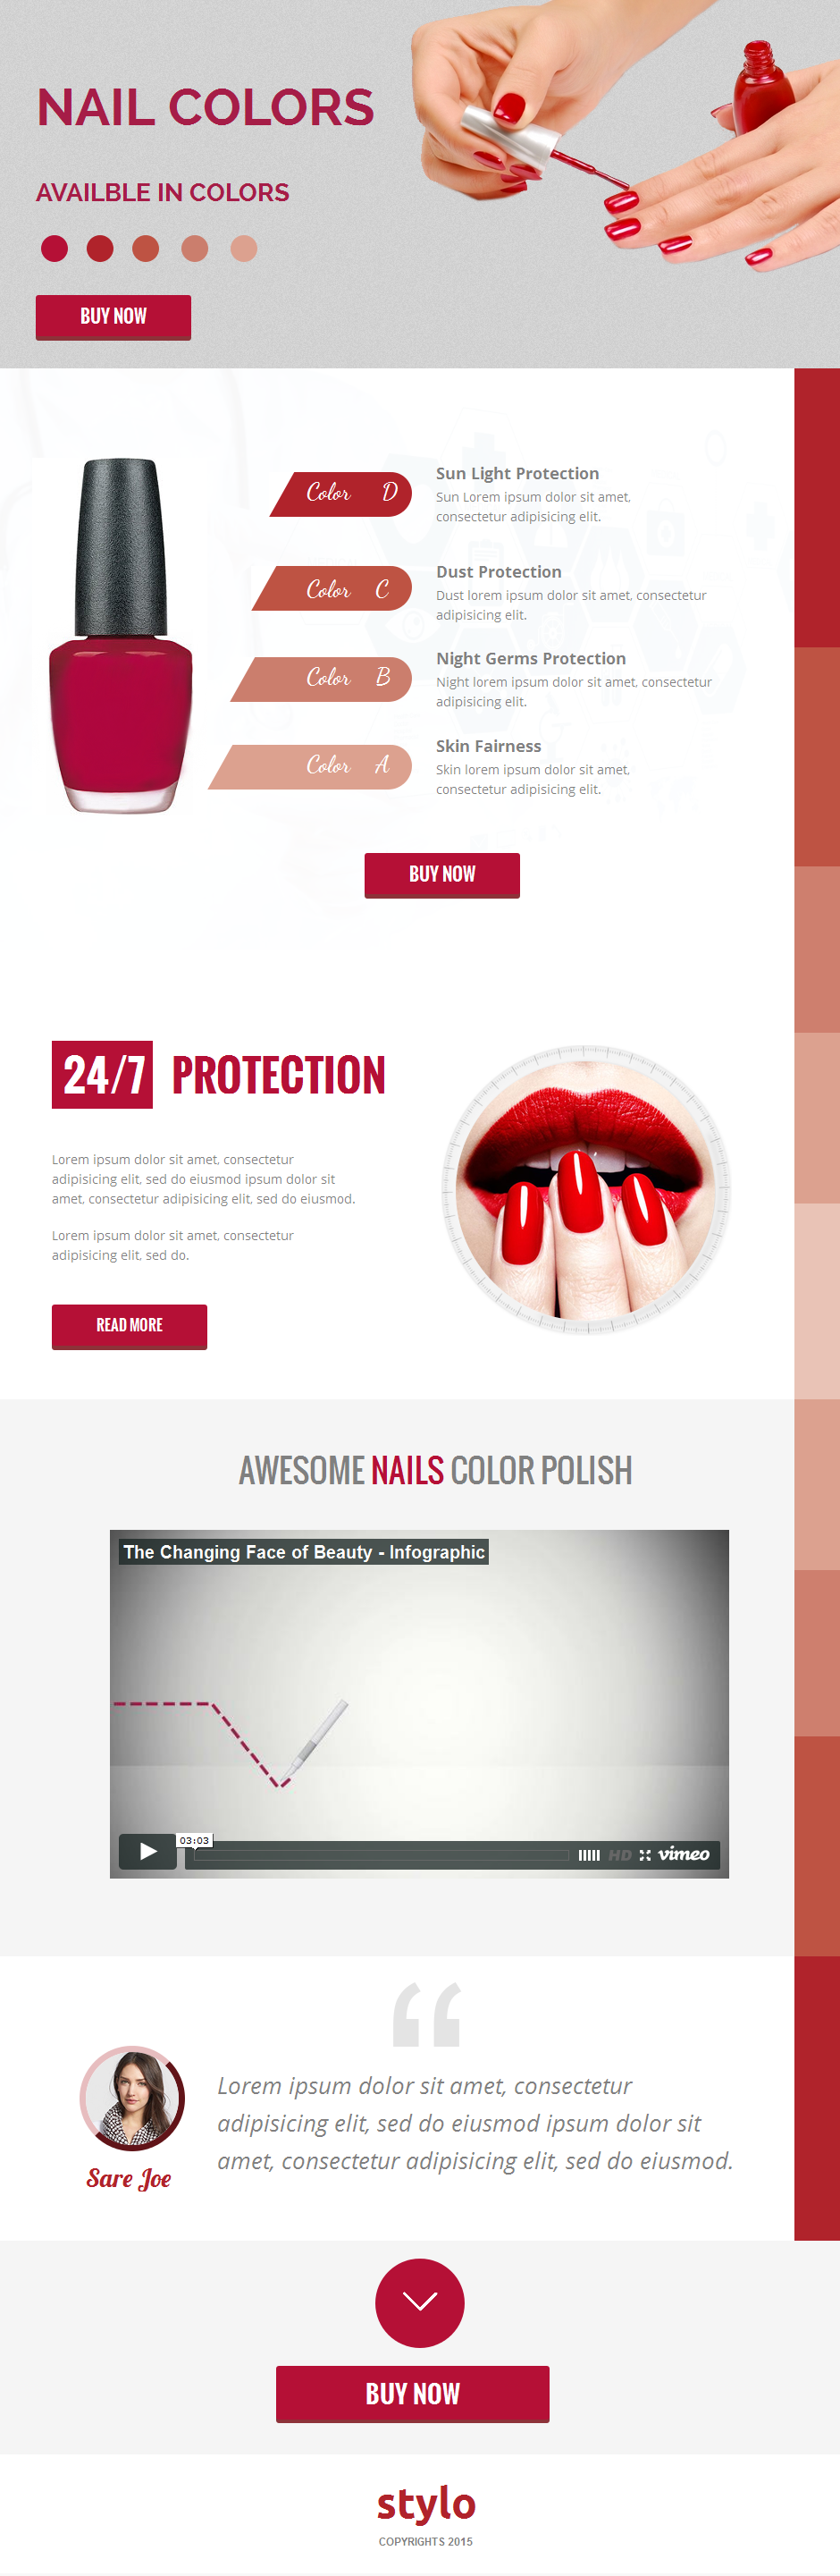 Stylo Unbounce Template